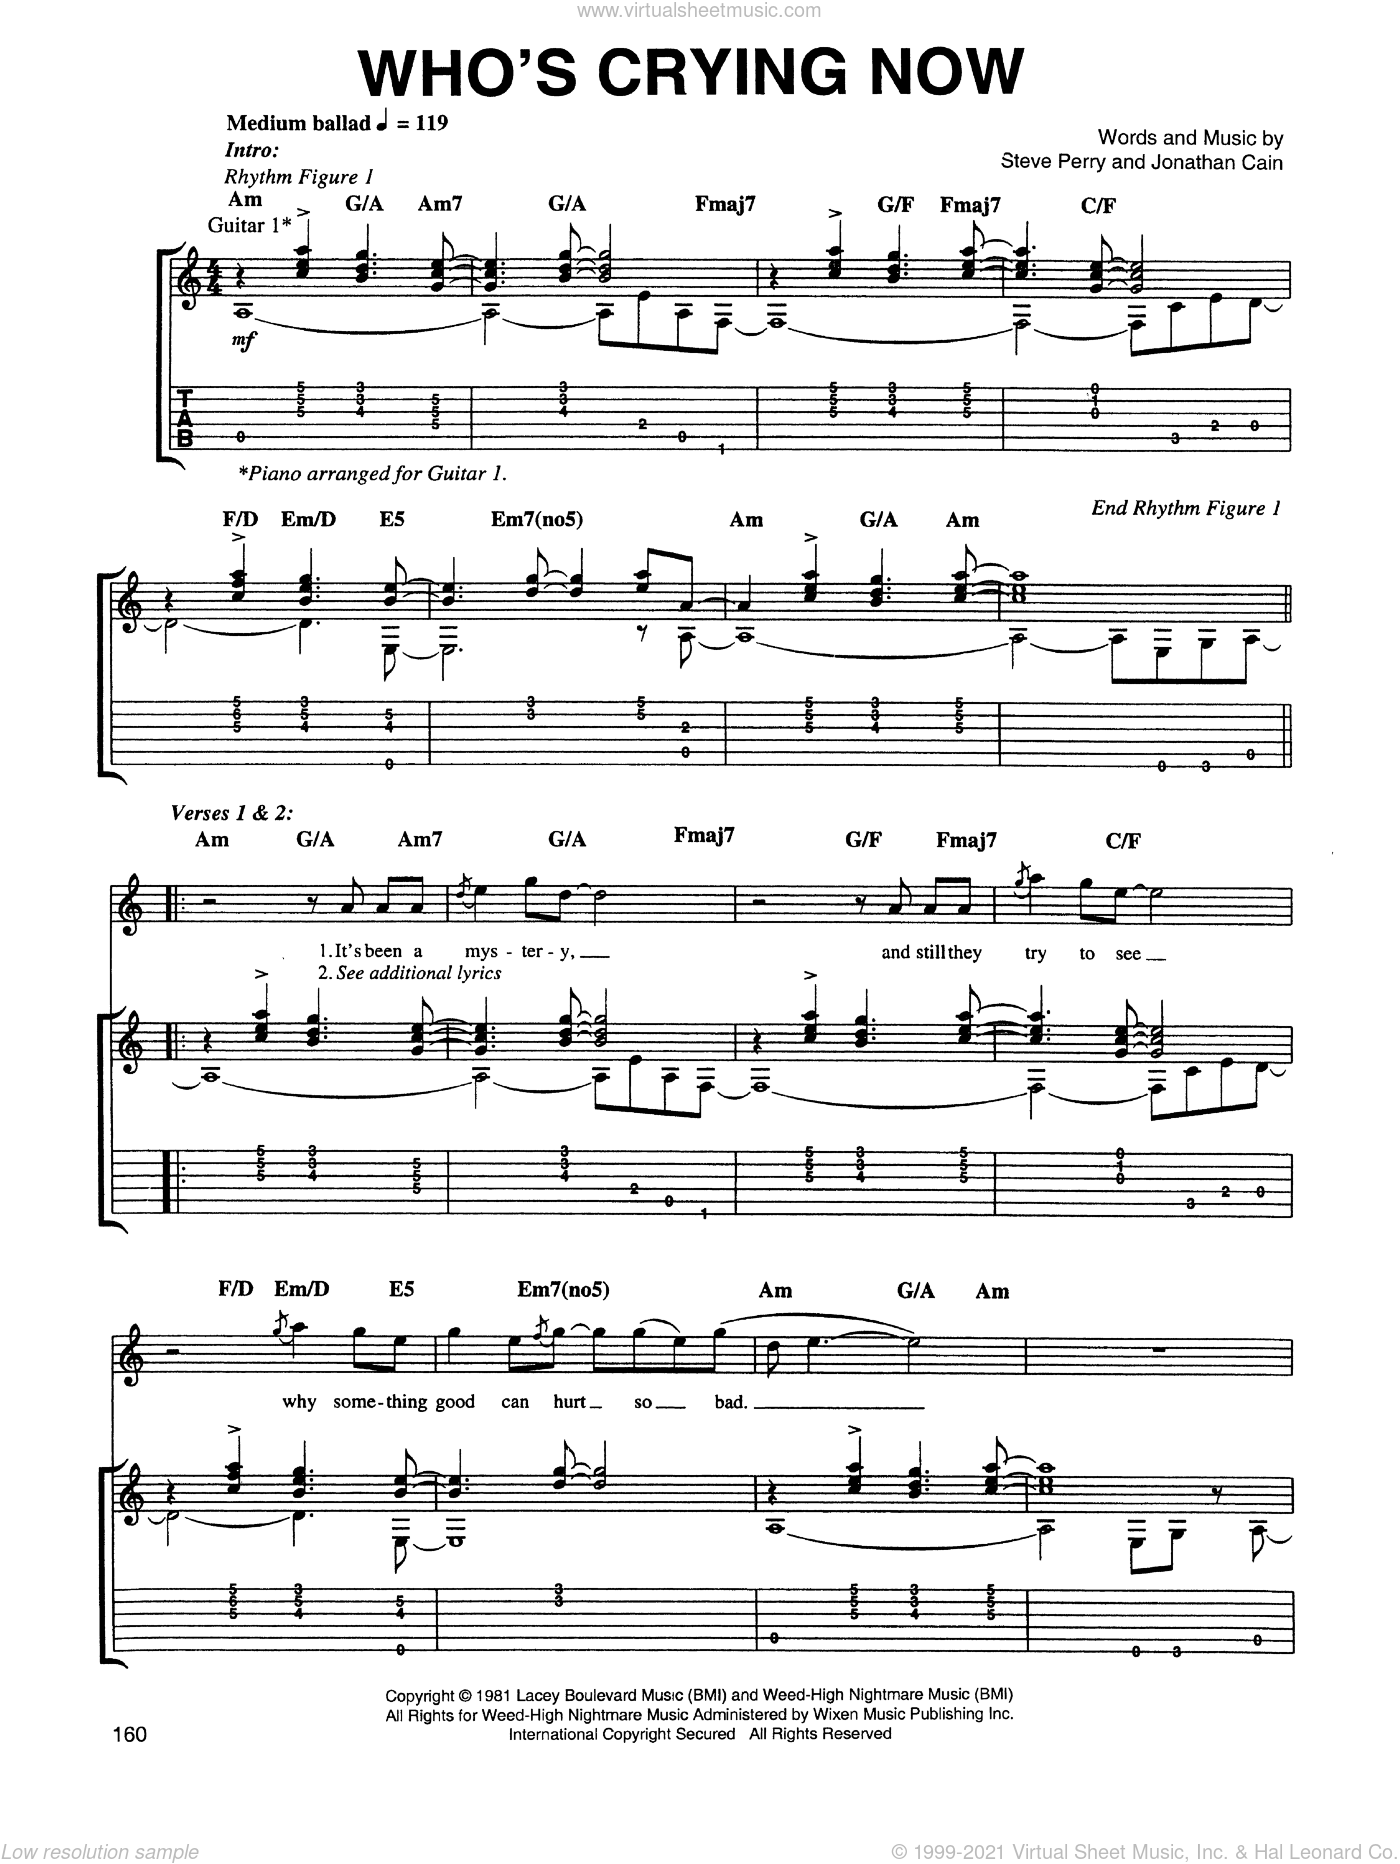 Who's Crying Now sheet music for guitar (tablature) by Steve Perry